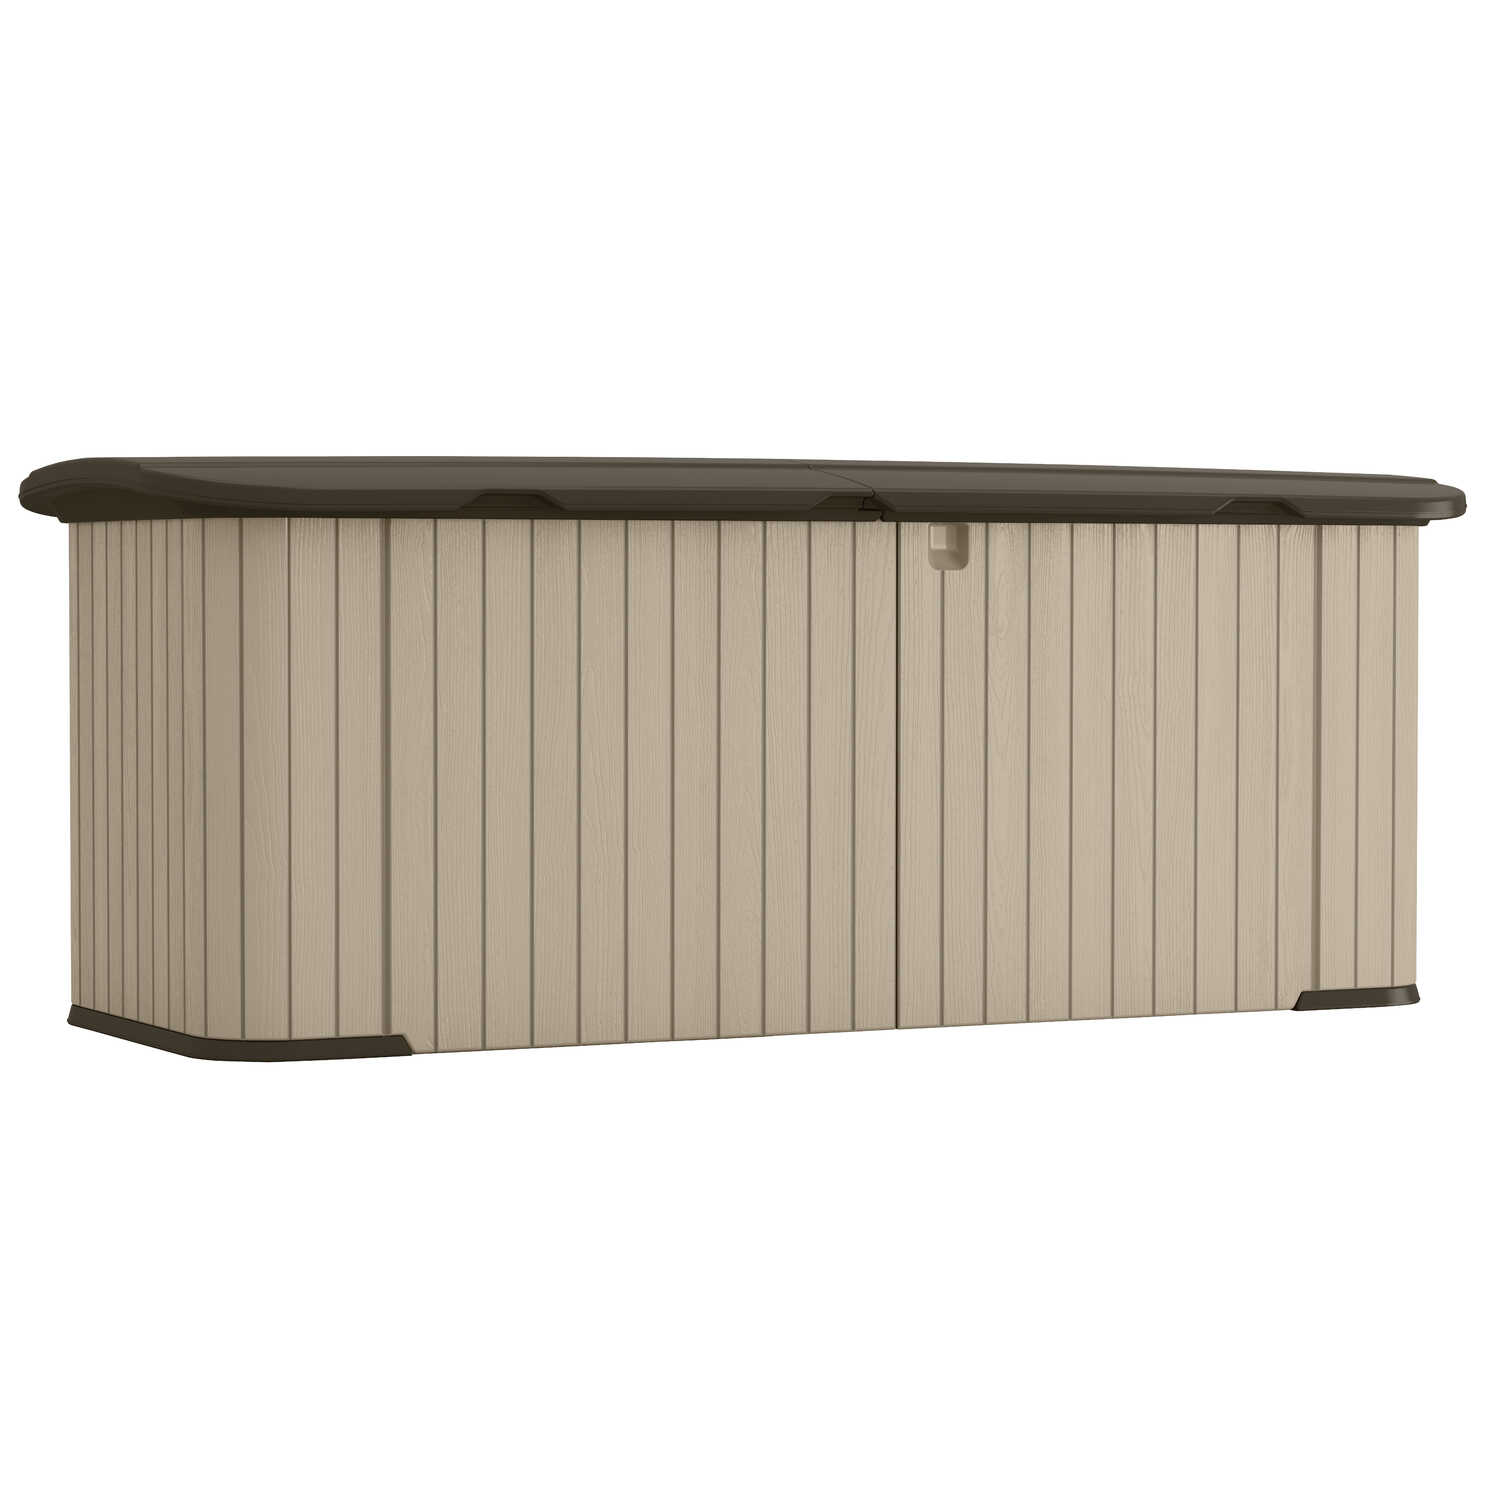 Suncast  34 in. H x 88 in. W x 36 in. D Plastic  Outdoor Storage Shed  Beige